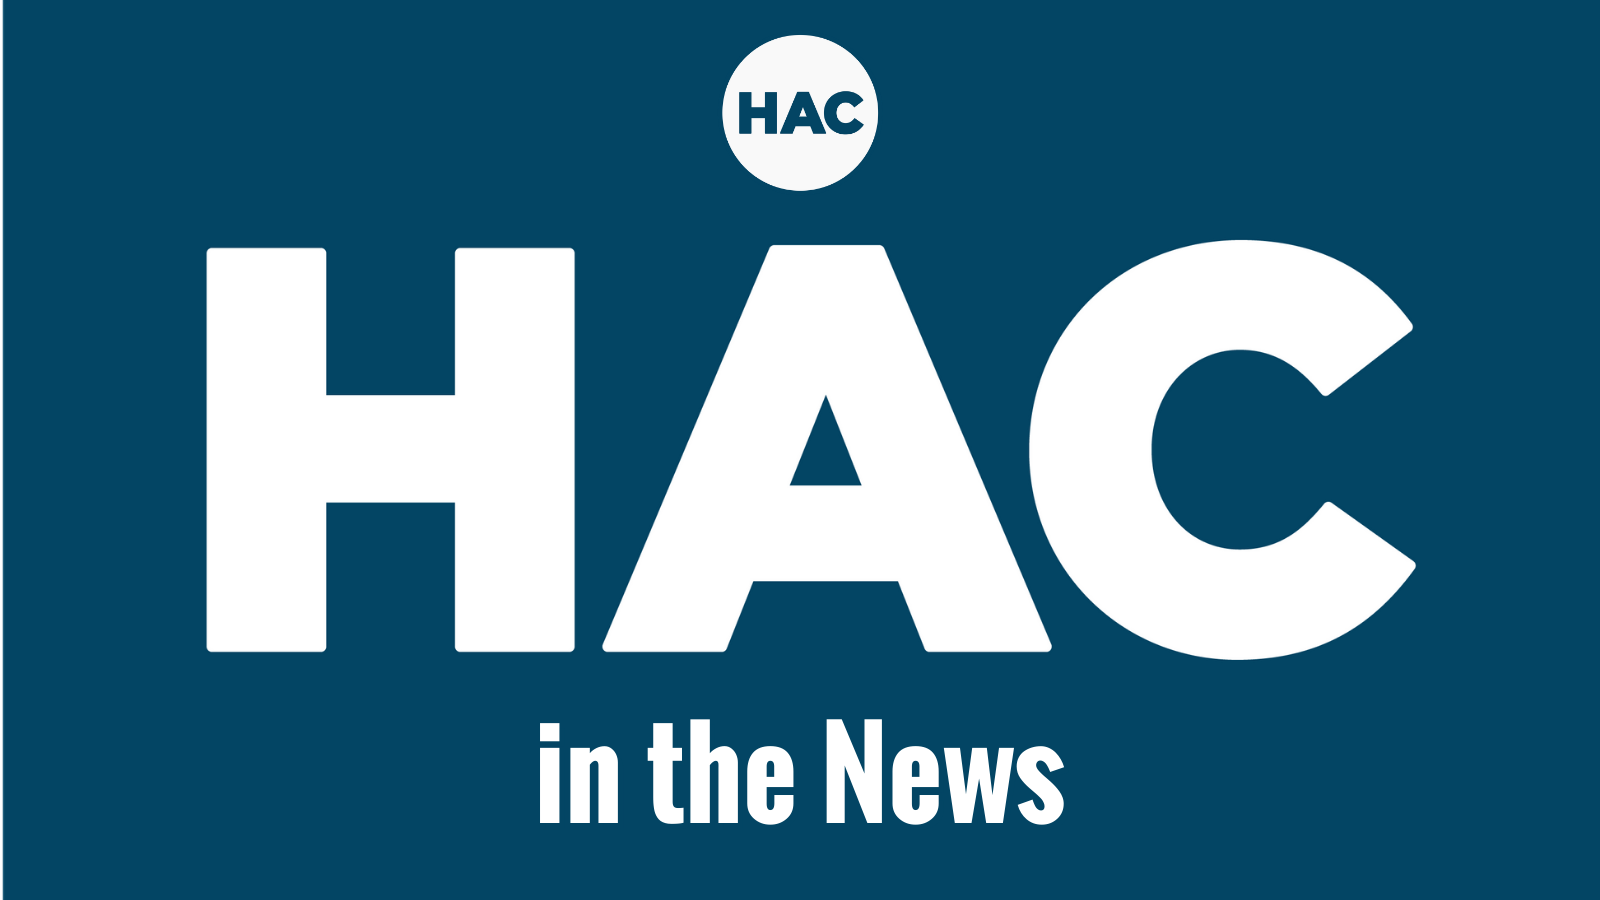 HAC in the News